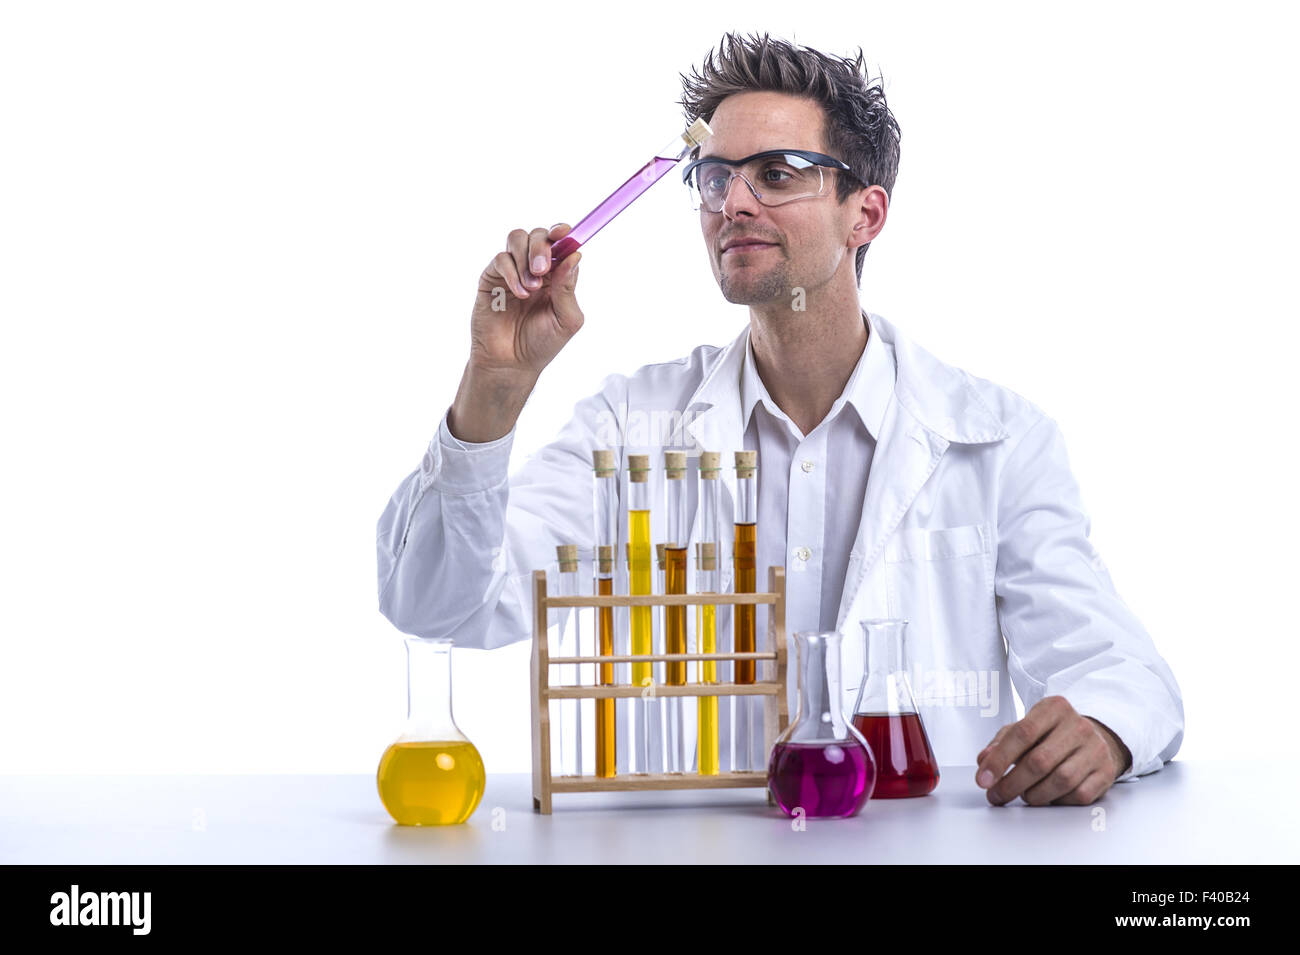 Chemist in the lab - Stock Image